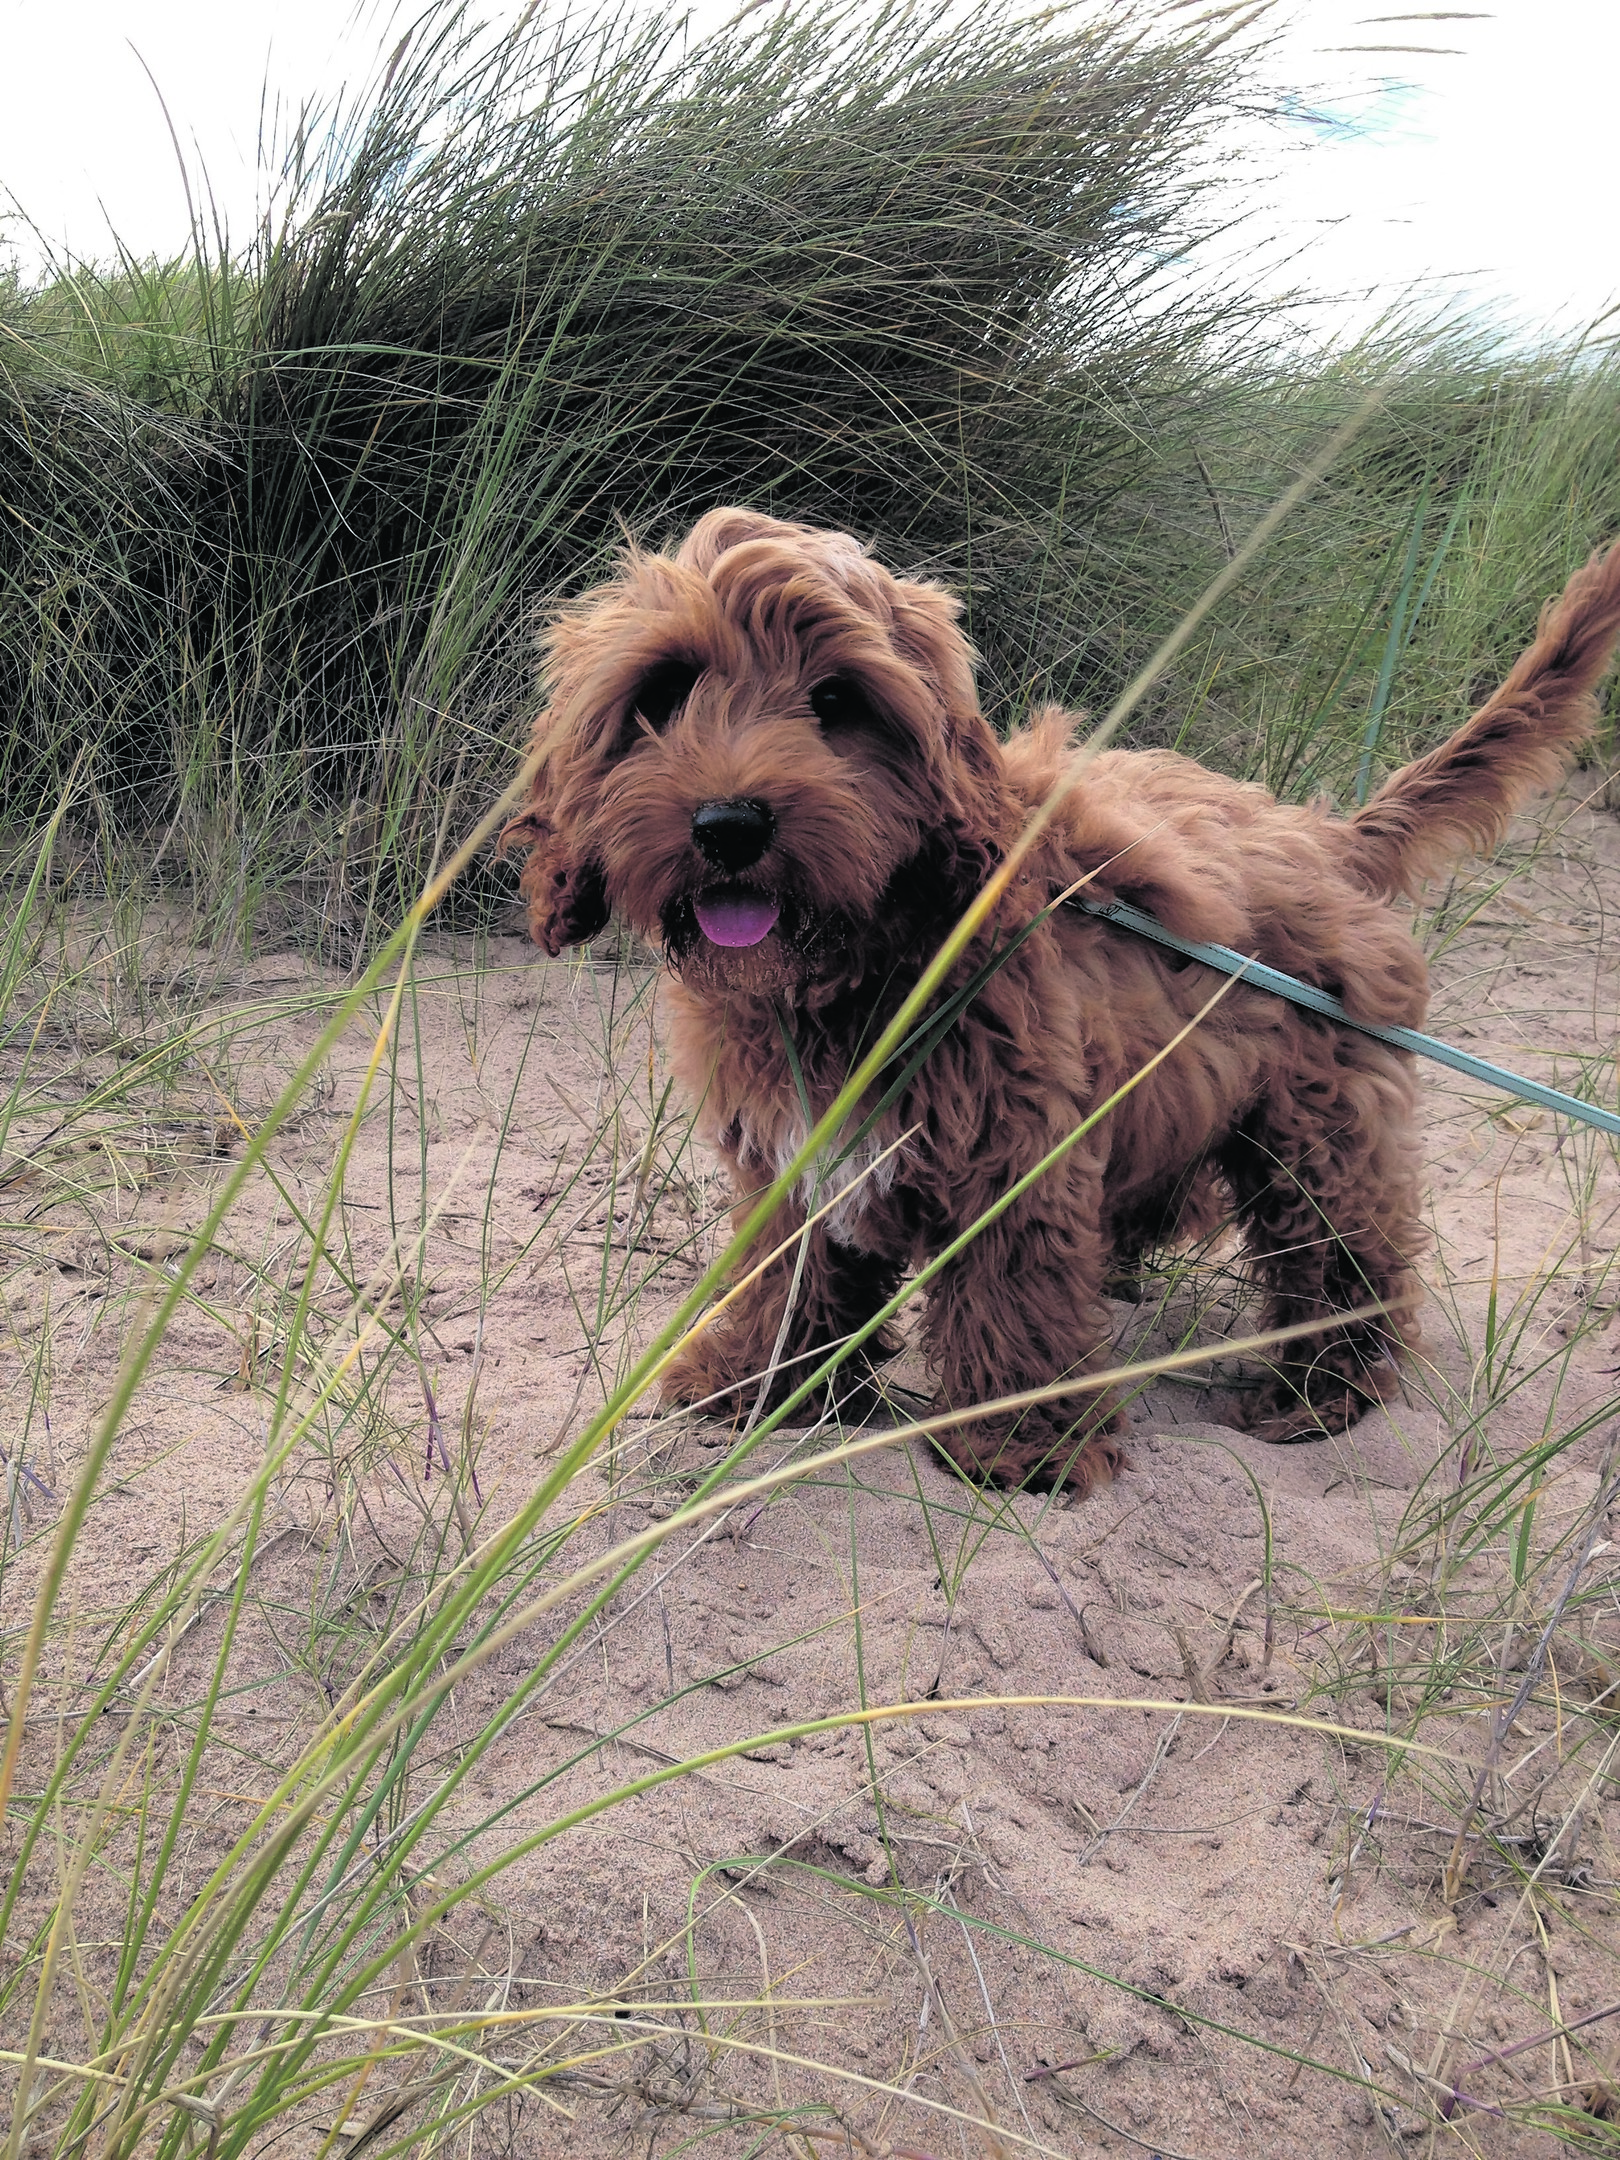 Here is Ellie May, theprecious cockapoo puppy enjoying the beach. She lives with the Robertson family near Peterhead and is a joy.